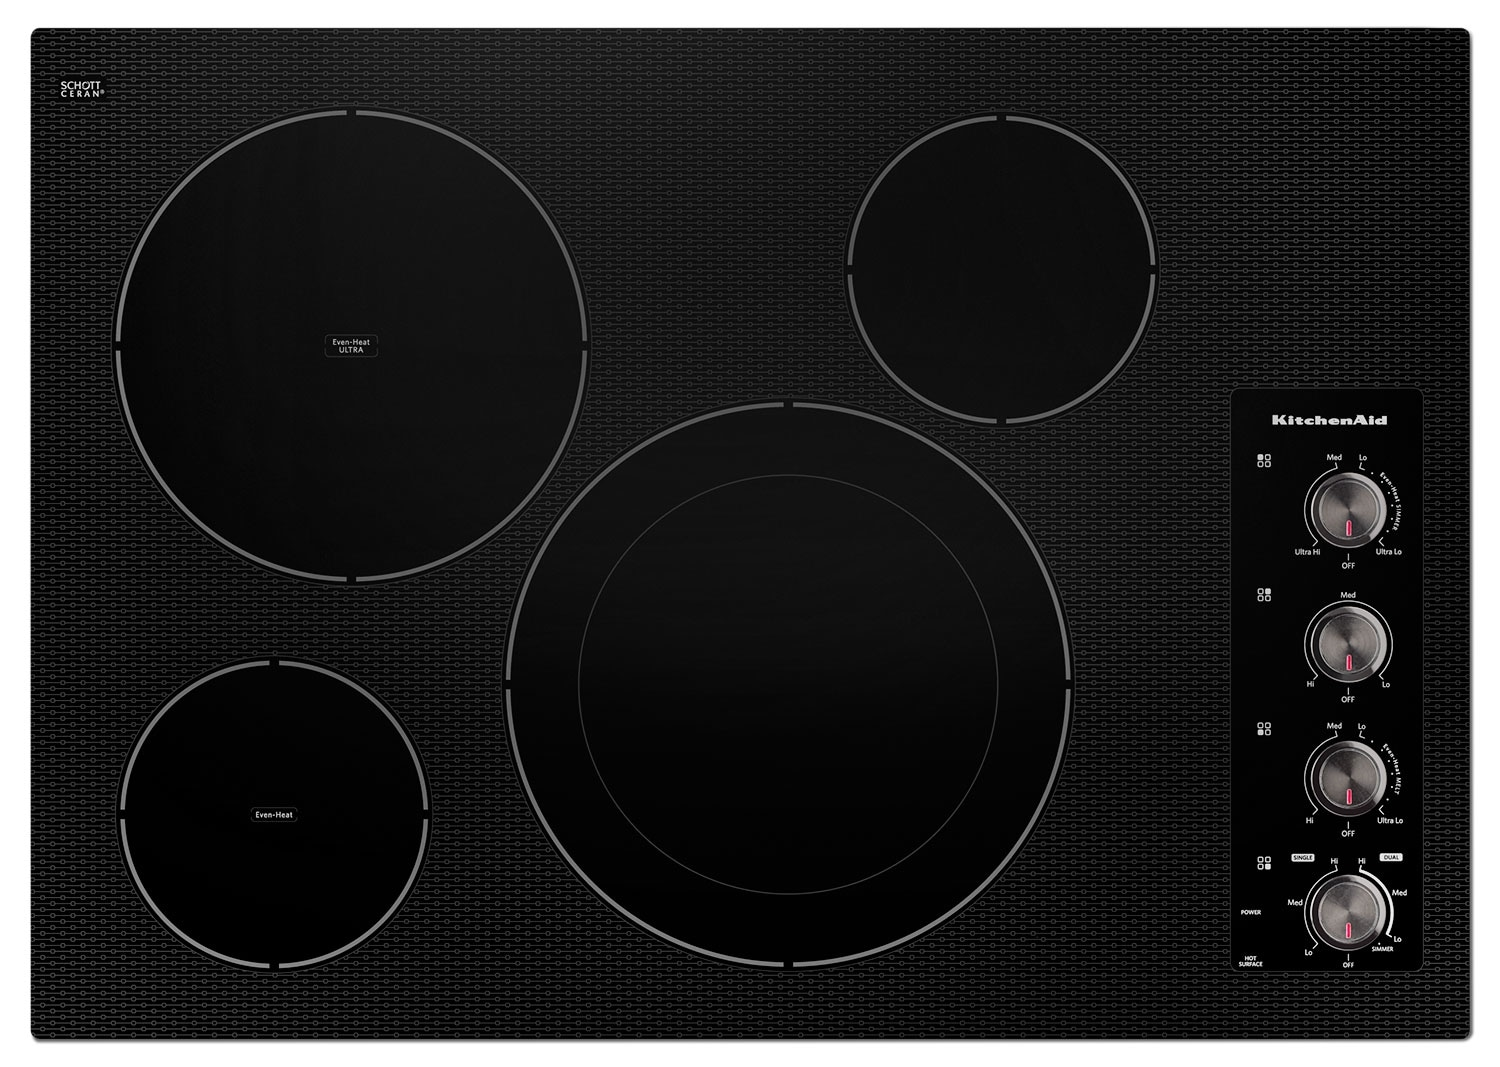 "KitchenAid 30"" Electric Cooktop with 4 Radiant Elements - Black"